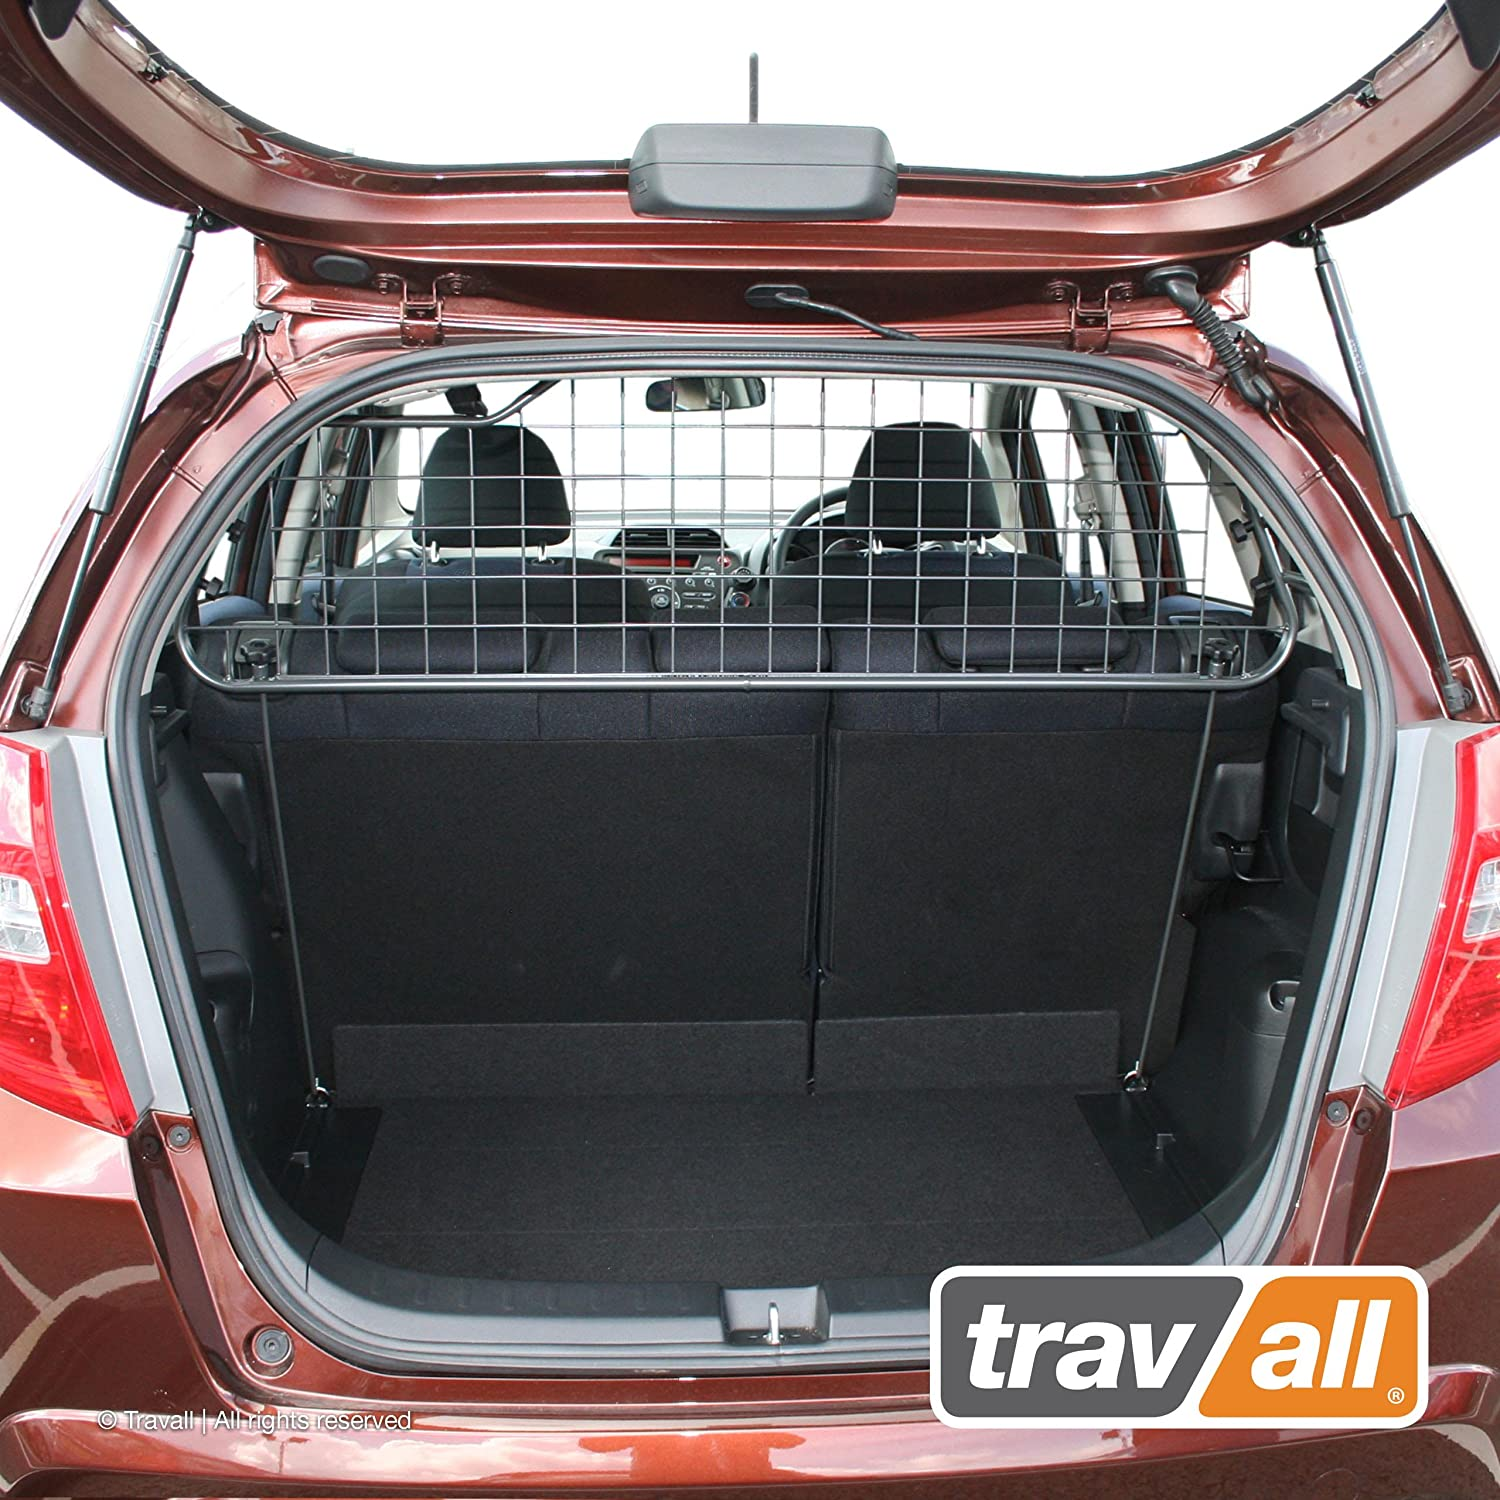 Travall Guard TDG1290 Vehicle-Specific Dog Guard